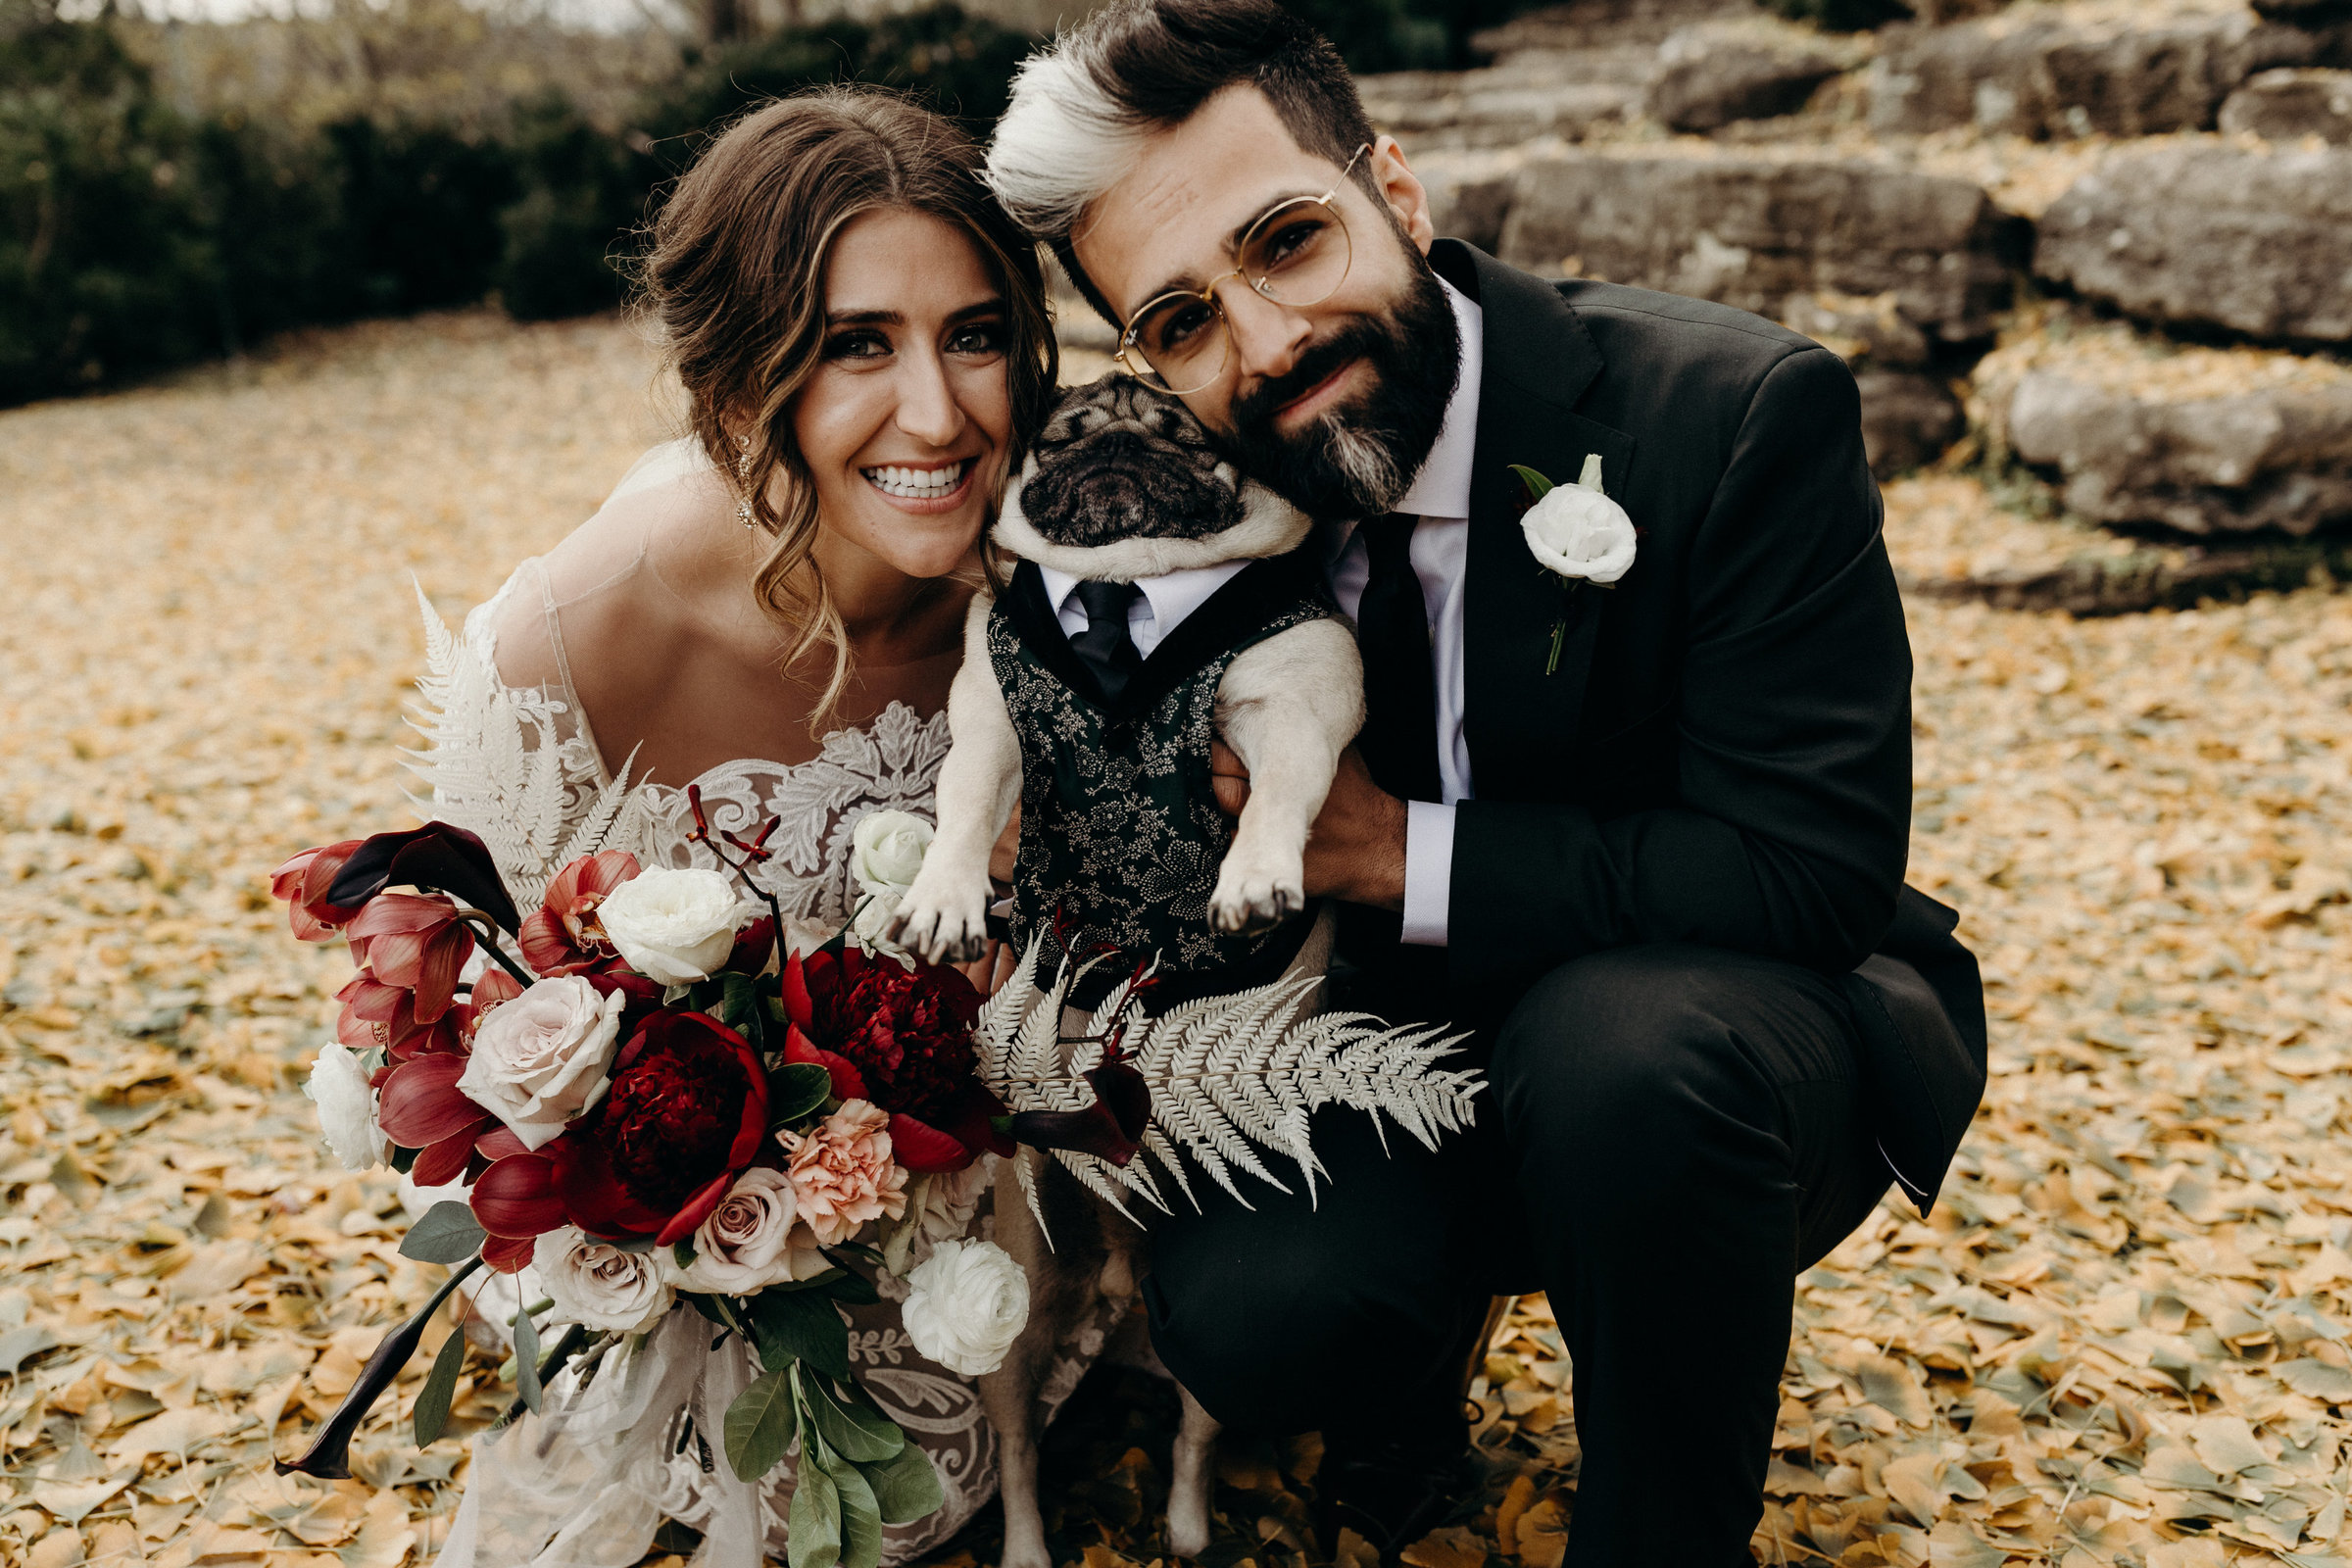 Leslie and Rob - Nashville Wedding with Doug the pug - Victoria Bonvicini-483